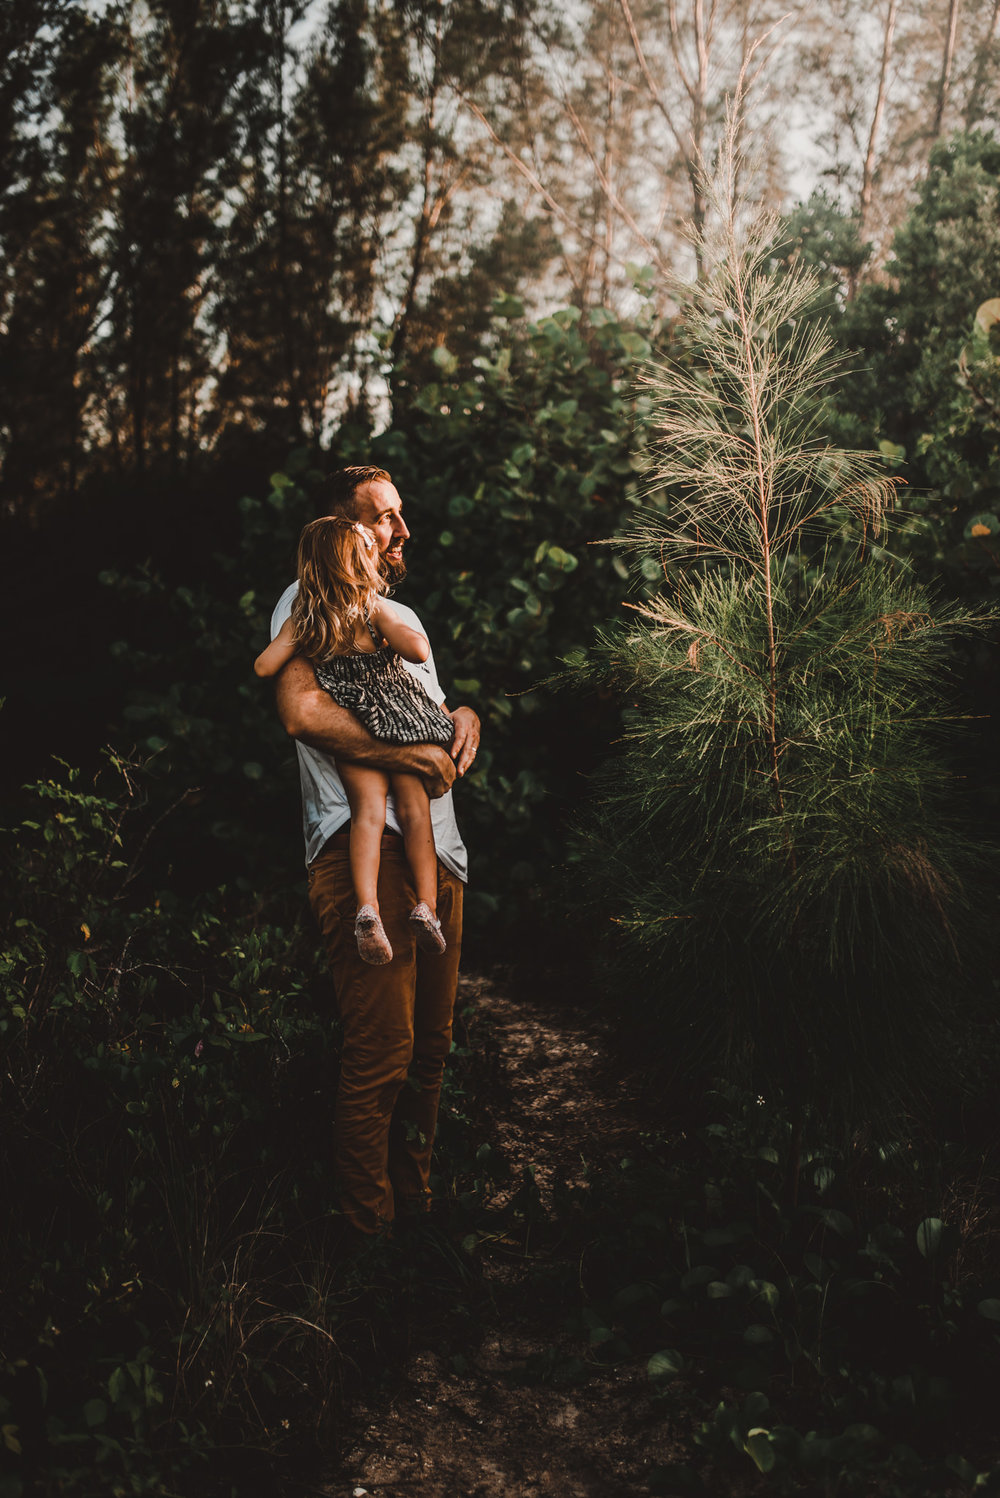 twyla jones photography - treasure coast florida - josh and everly--12.jpg